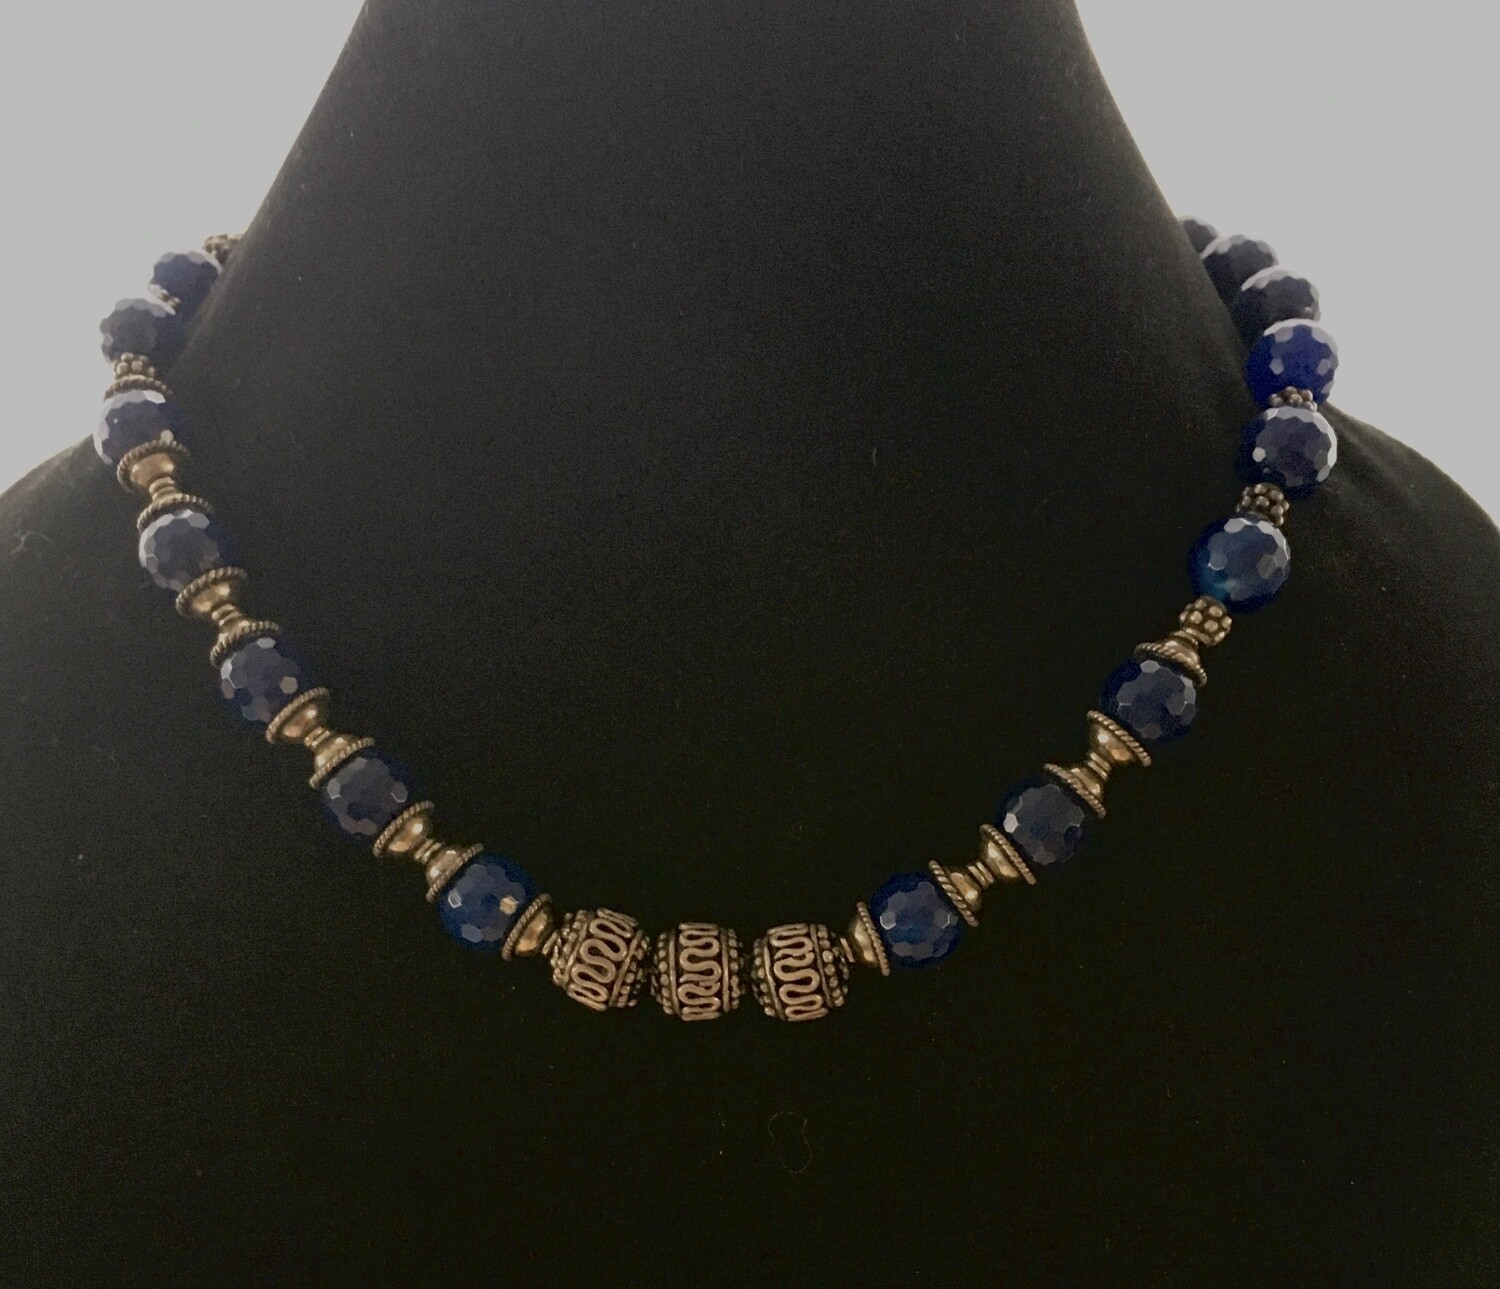 Faceted blue agate and Bali silver necklace